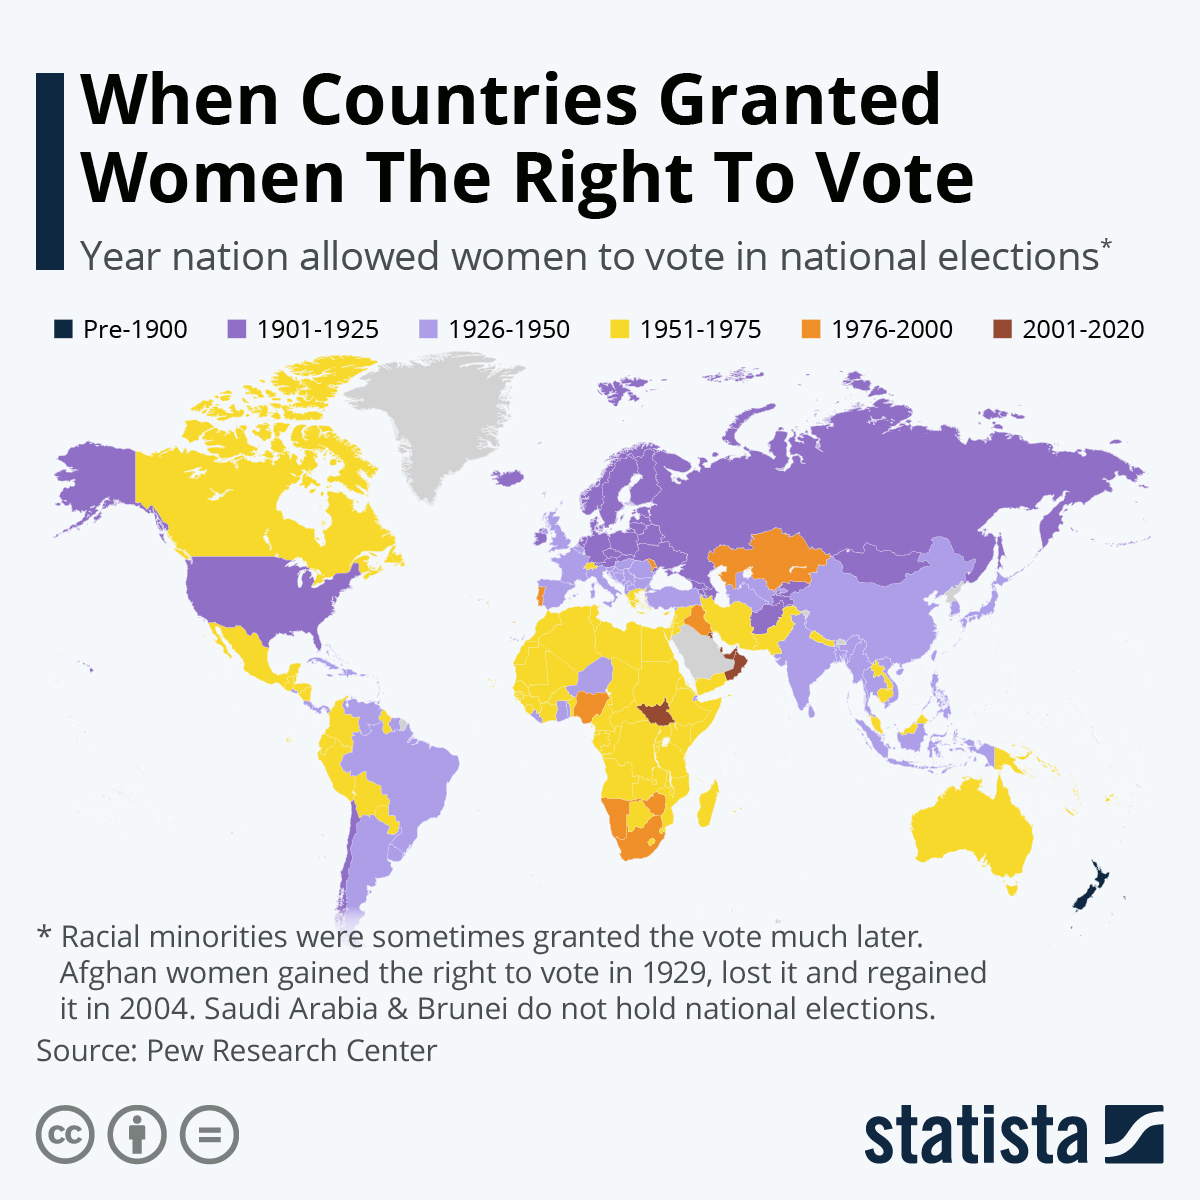 When Countries Granted Women The Right To Vote